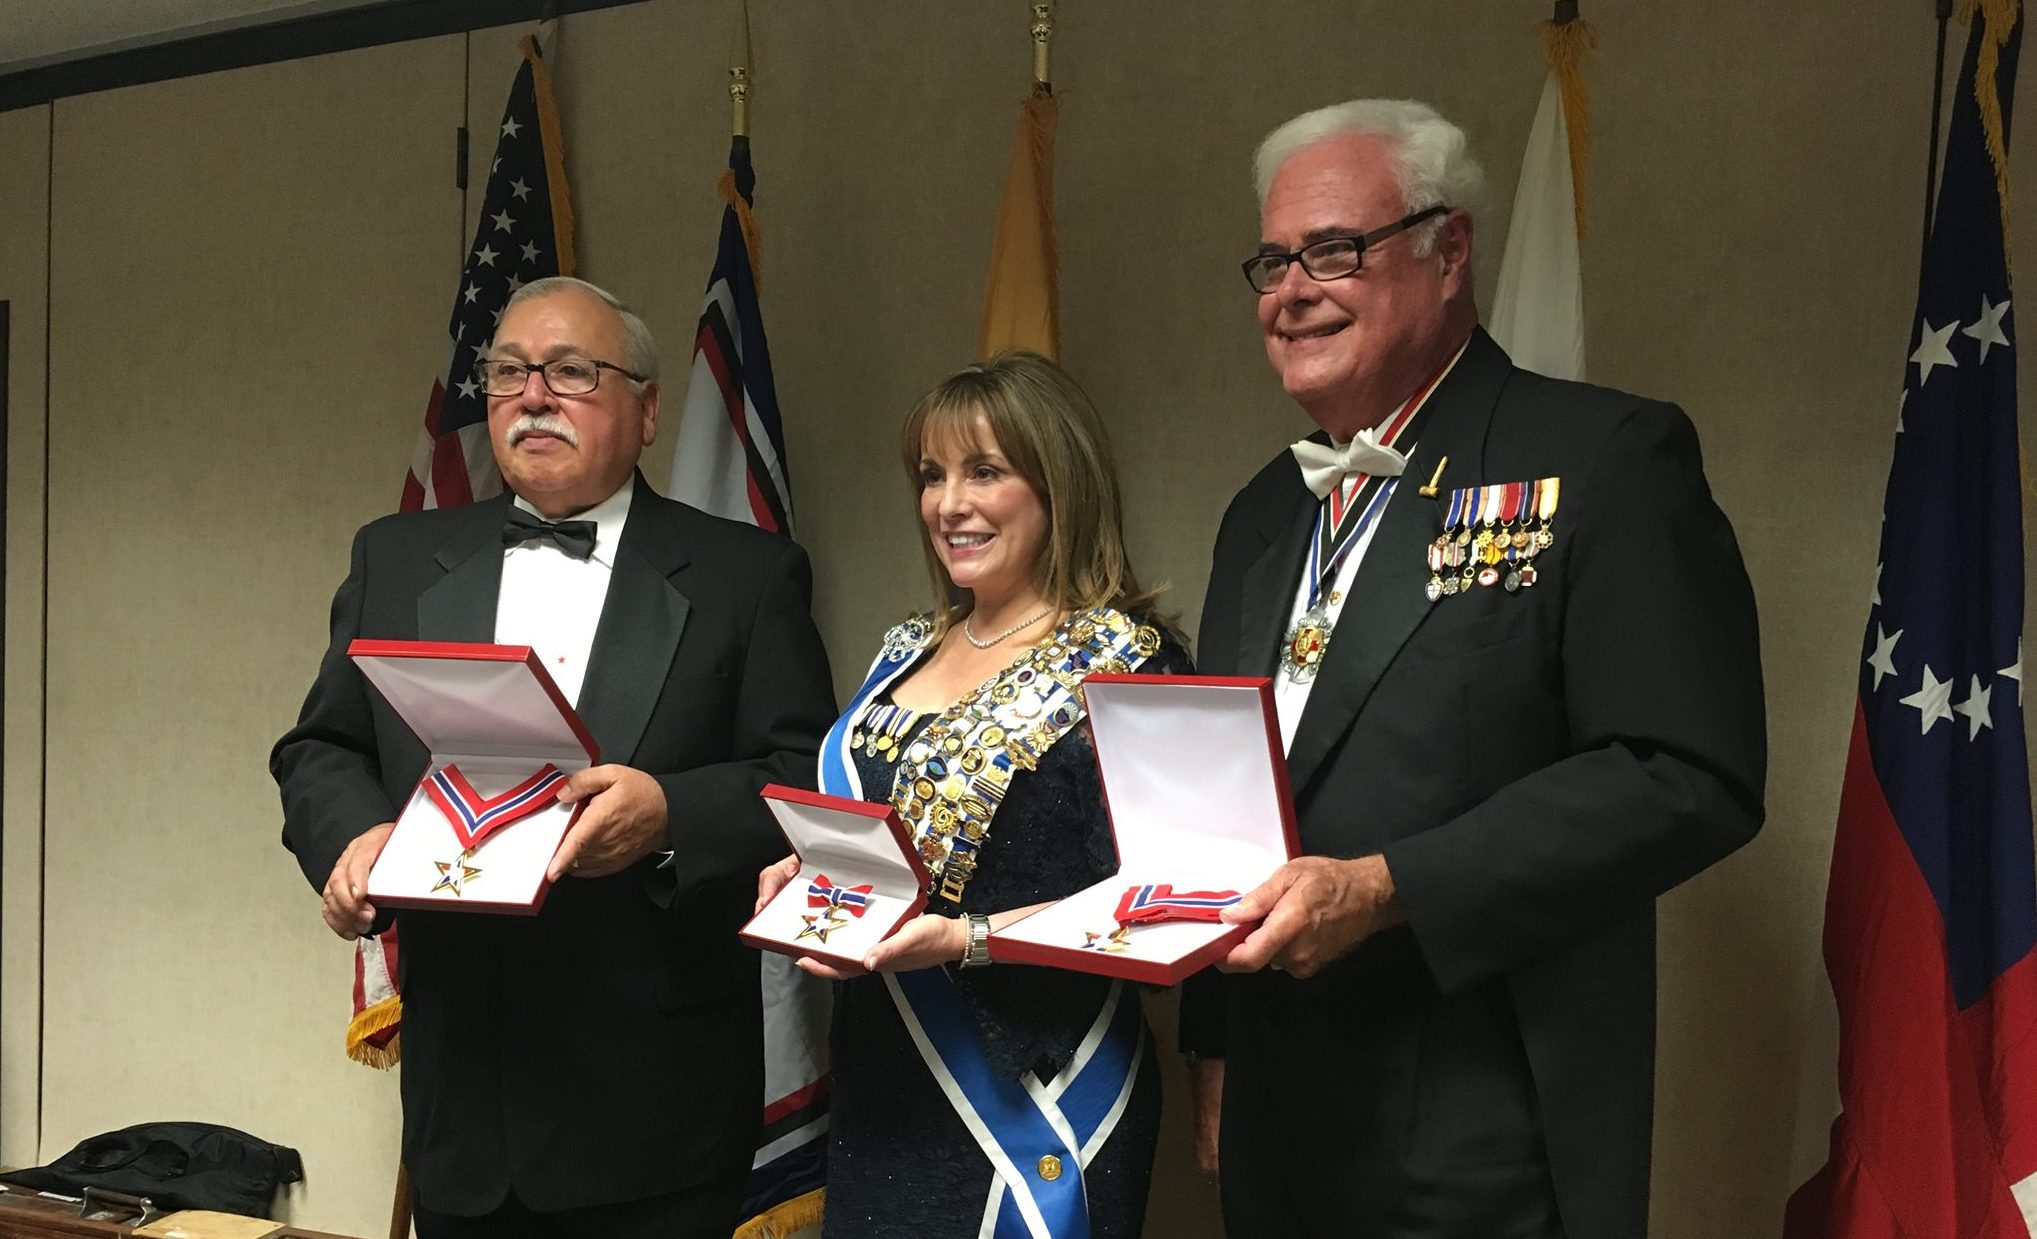 2017 Hall of Fame Awardees